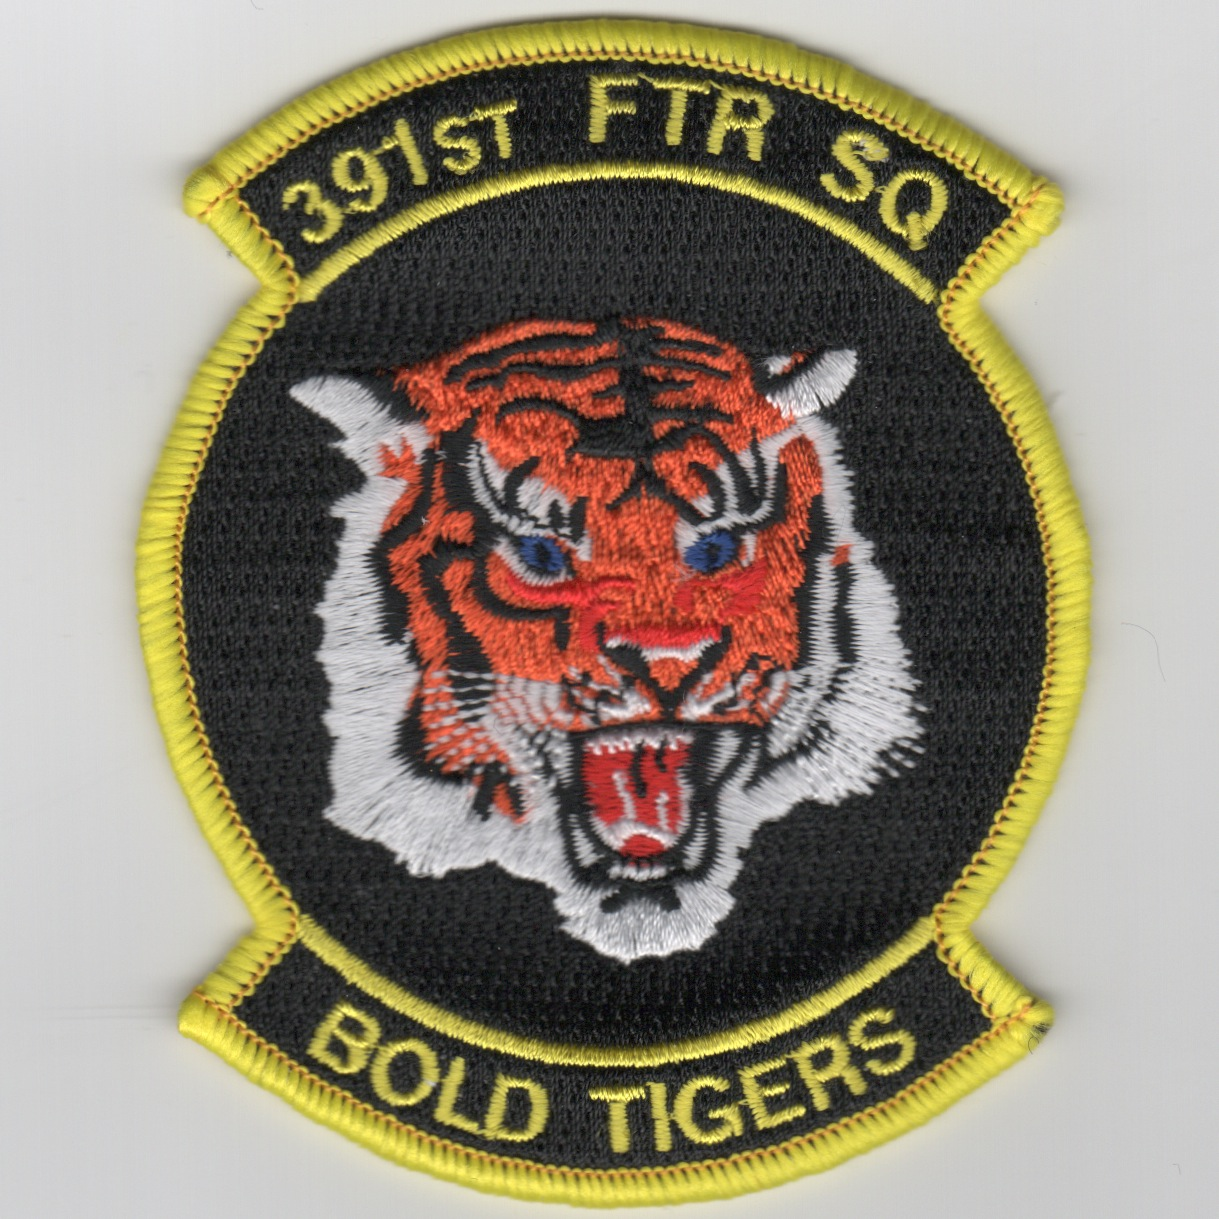 391FS Patch (Black/Yellow Border)